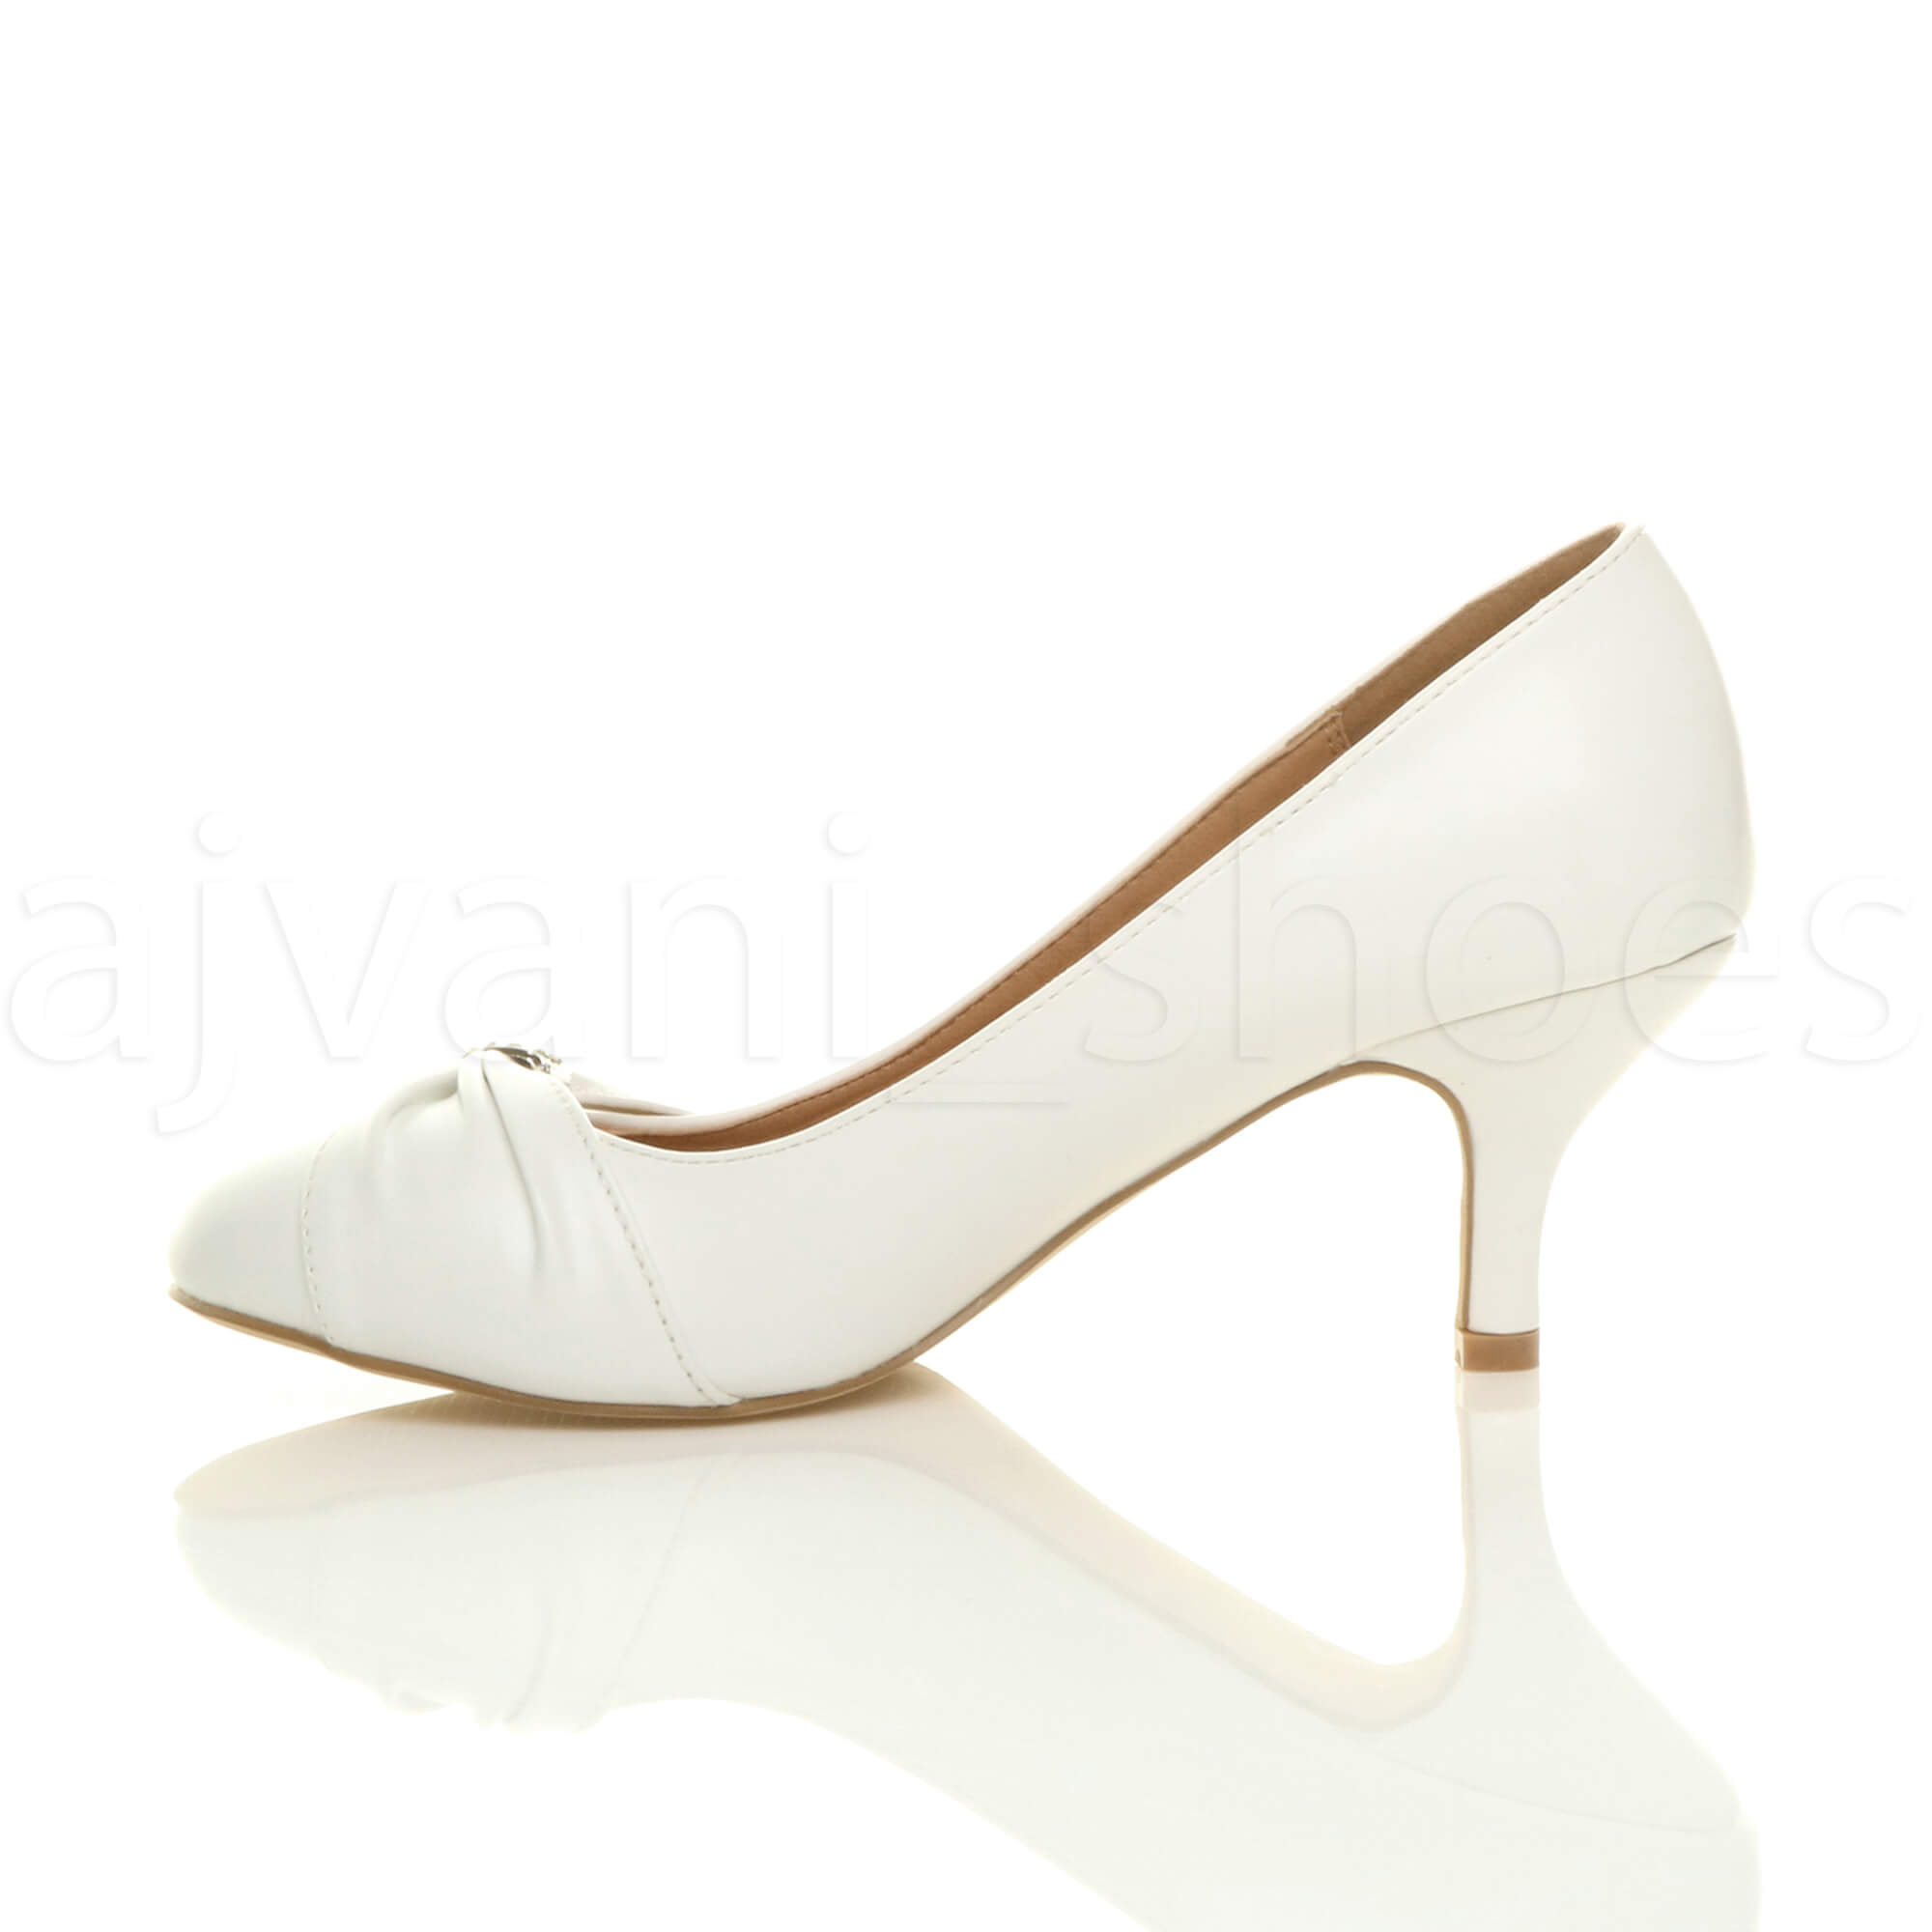 WOMENS-LADIES-MID-HEEL-RUCHED-DIAMANTE-WEDDING-PROM-EVENING-COURT-SHOES-SIZE thumbnail 100